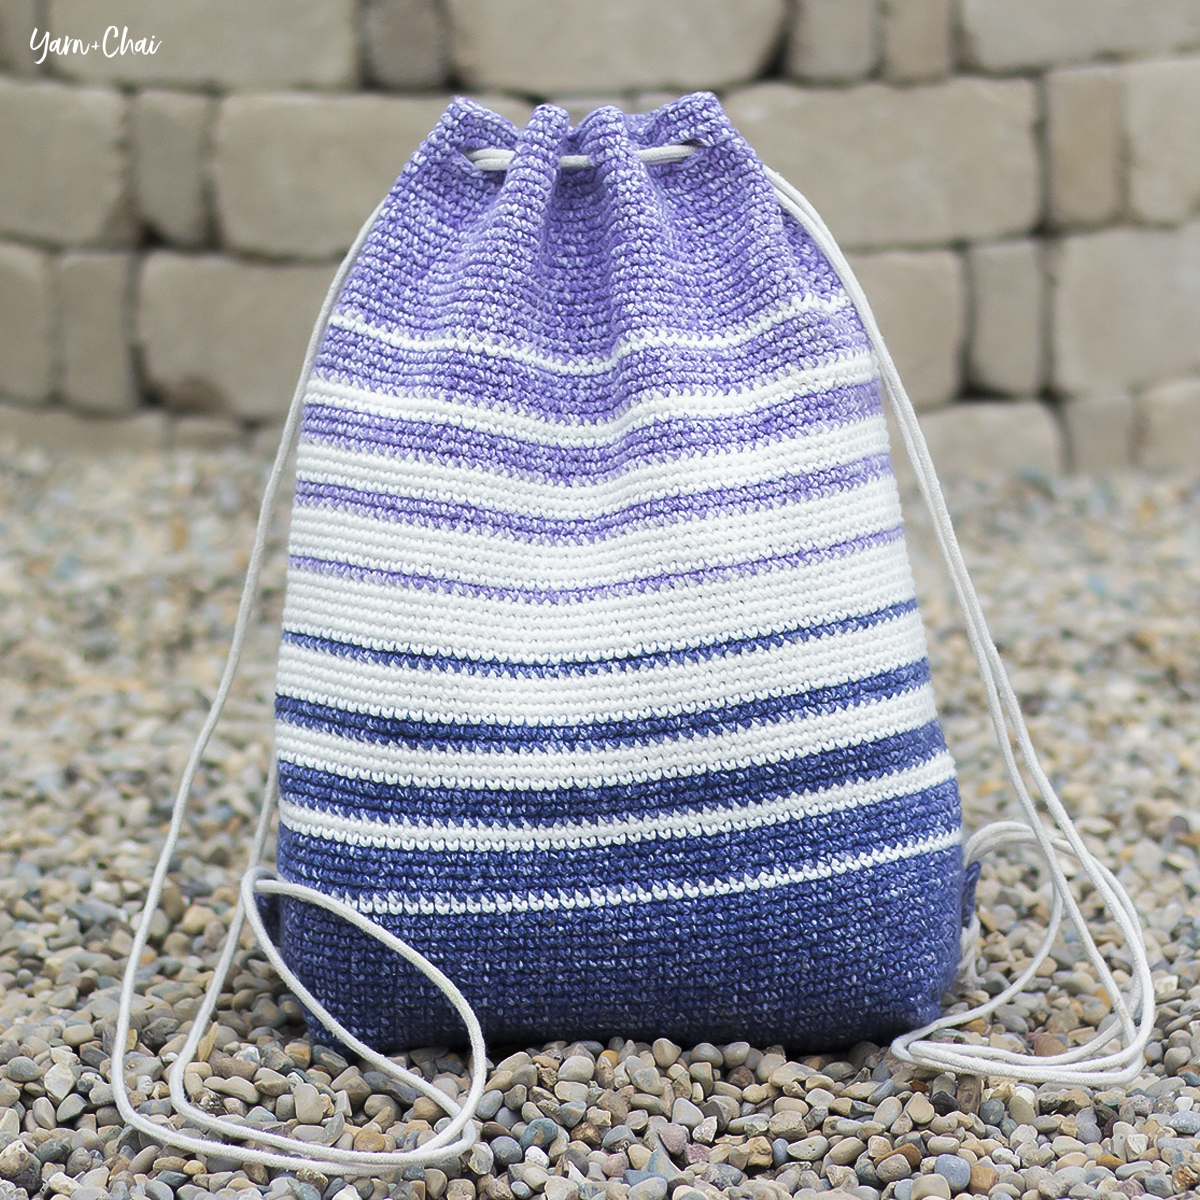 Fading Stripes Bag | Backpack Cinch Bag Crochet Pattern by Yarn + Chai